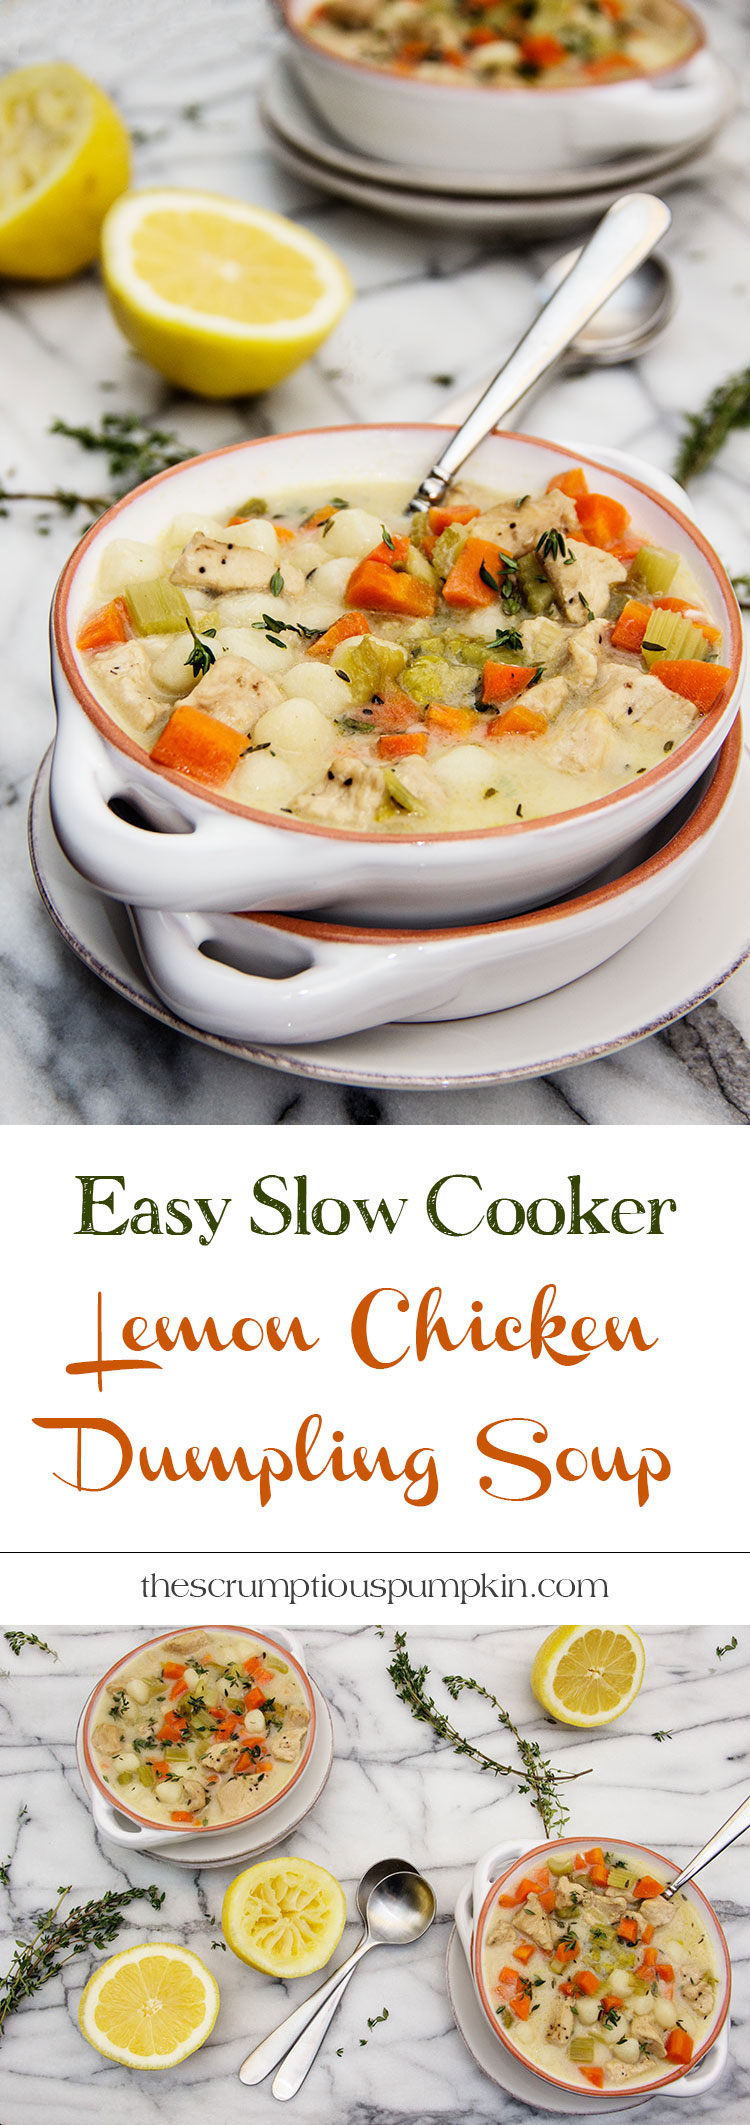 Easy-Slow-Cooker-Creamy-Lemon-Chicken-Dumpling-Soup